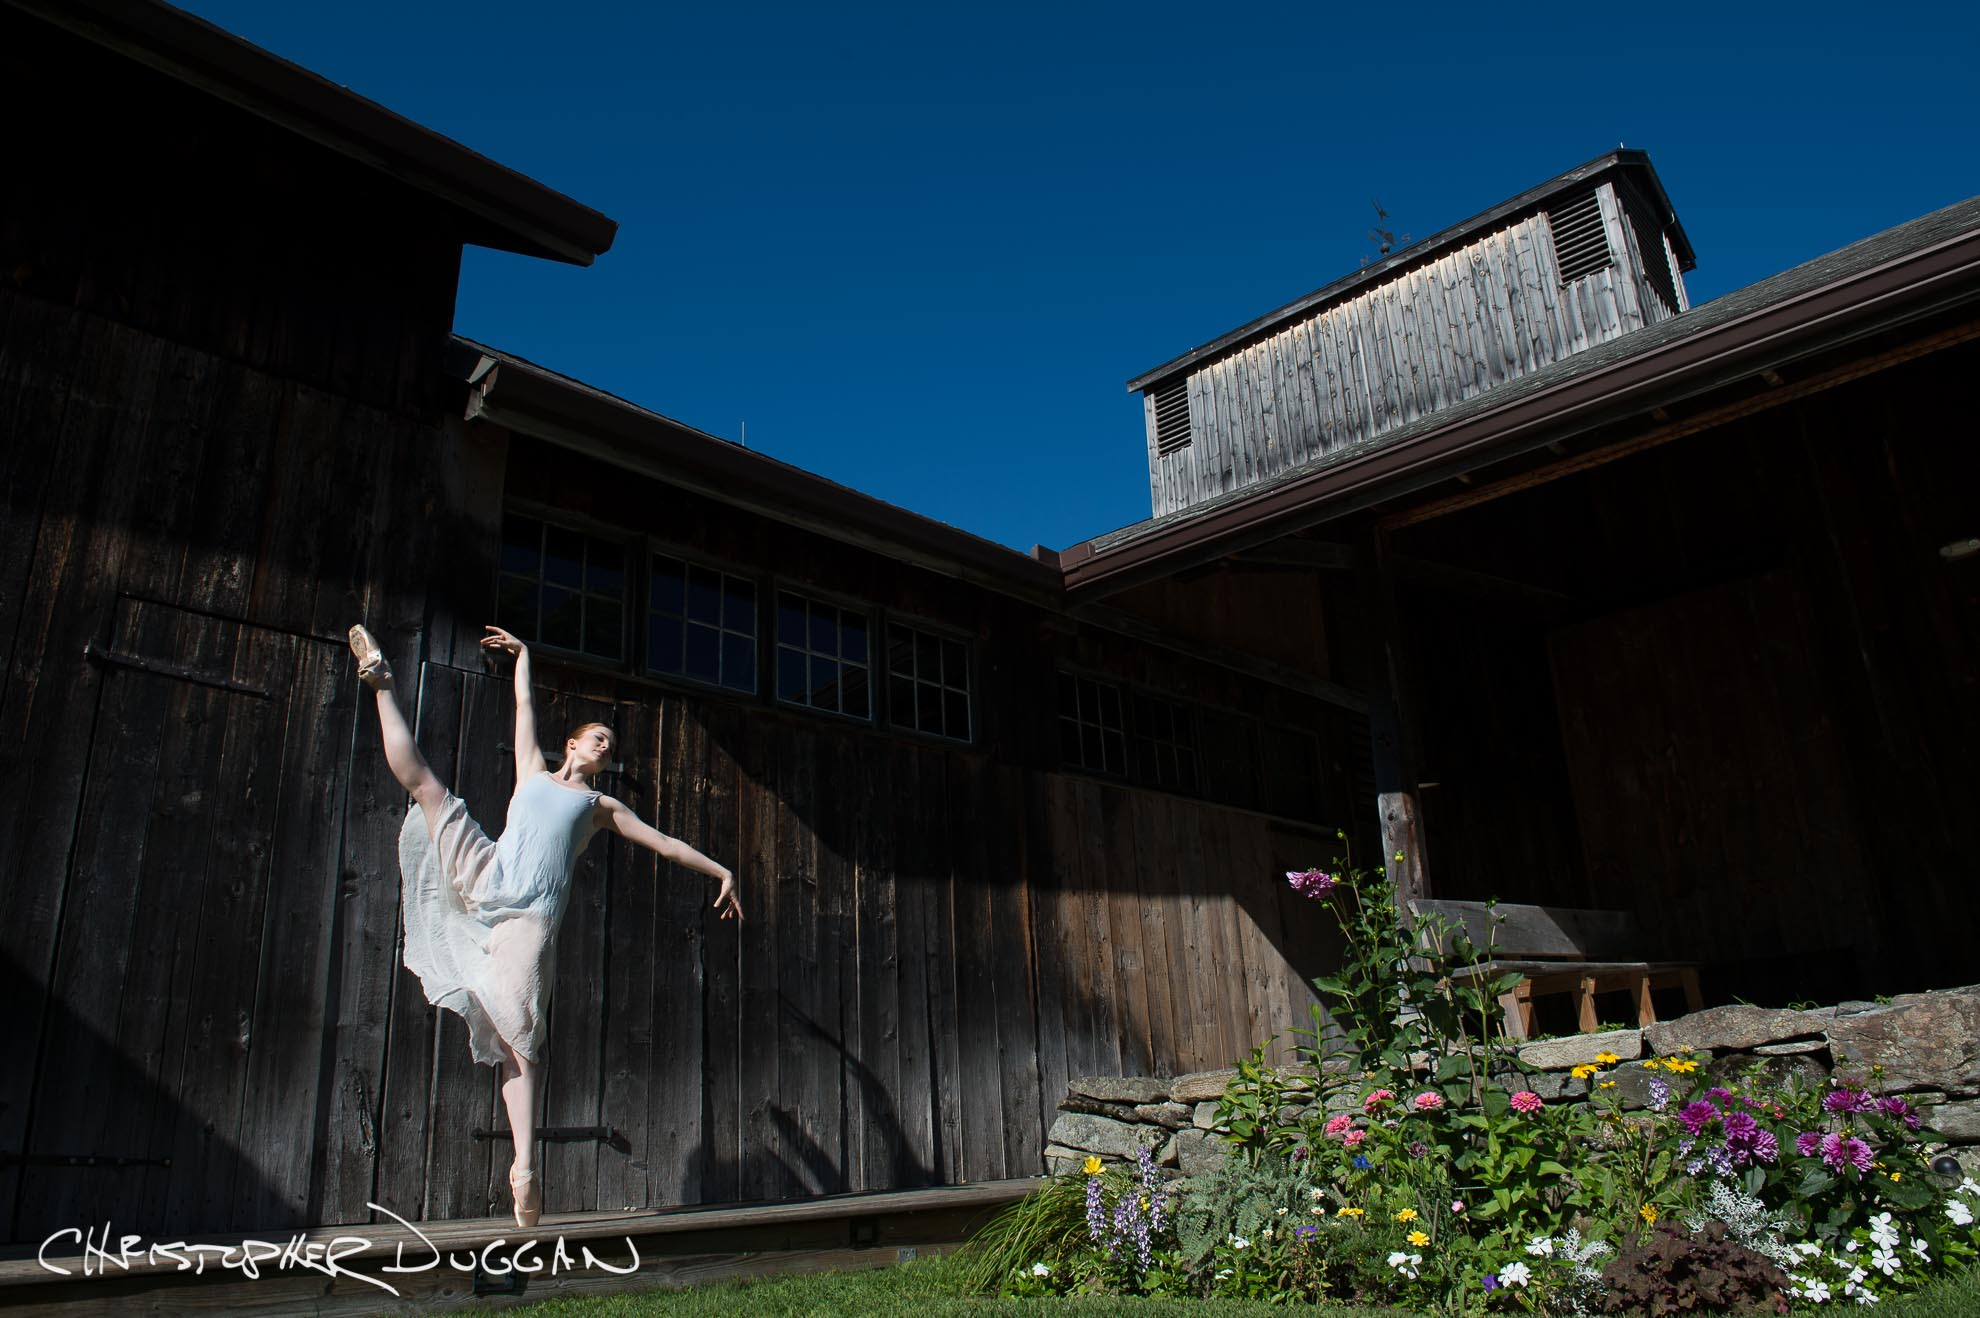 Behind-the-Scenes Dance Video with Pacific Northwest Ballet Dancers at Jacob's Pillow